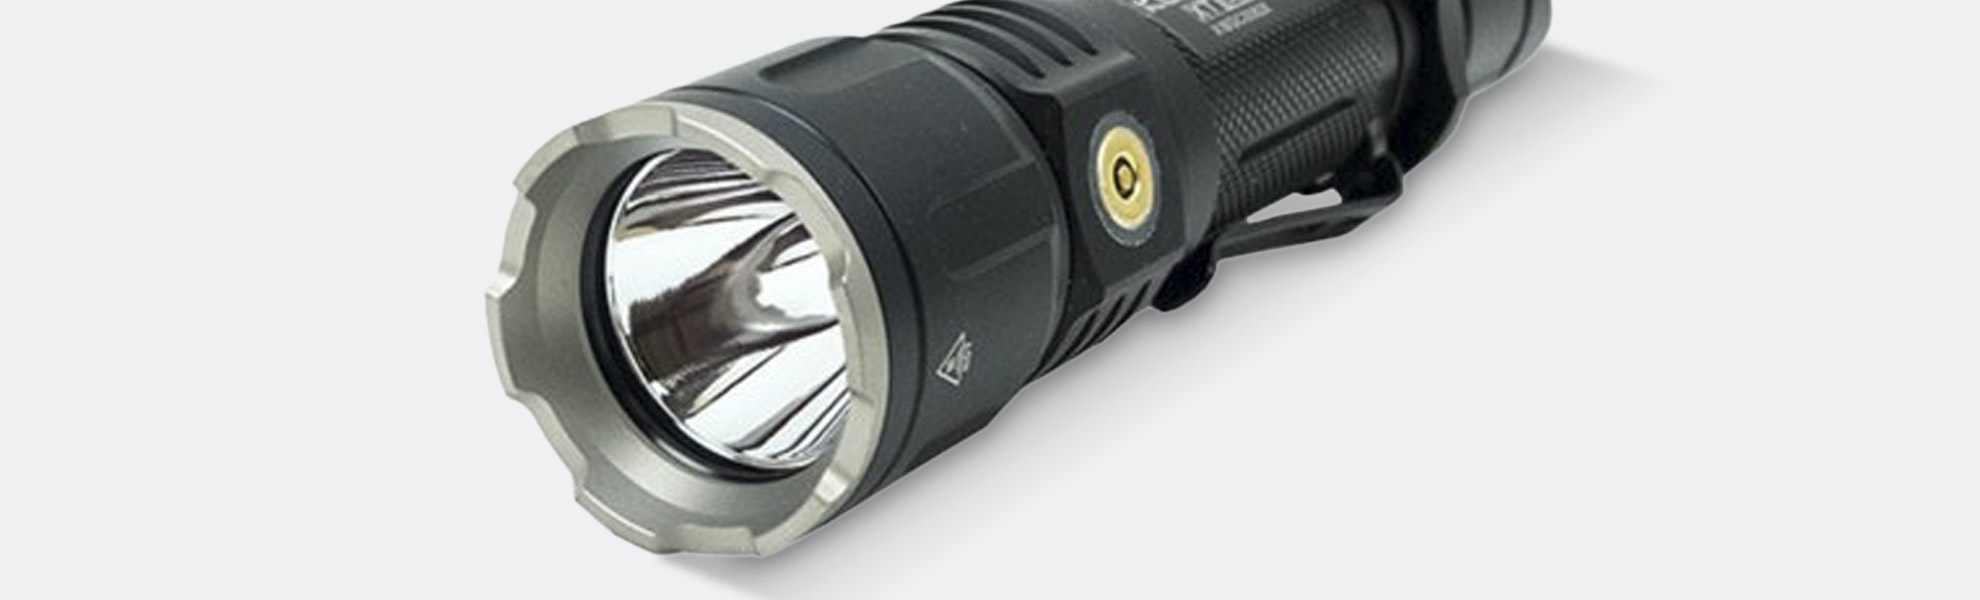 Klarus XT12S 1,600-Lumen Tactical Flashlight